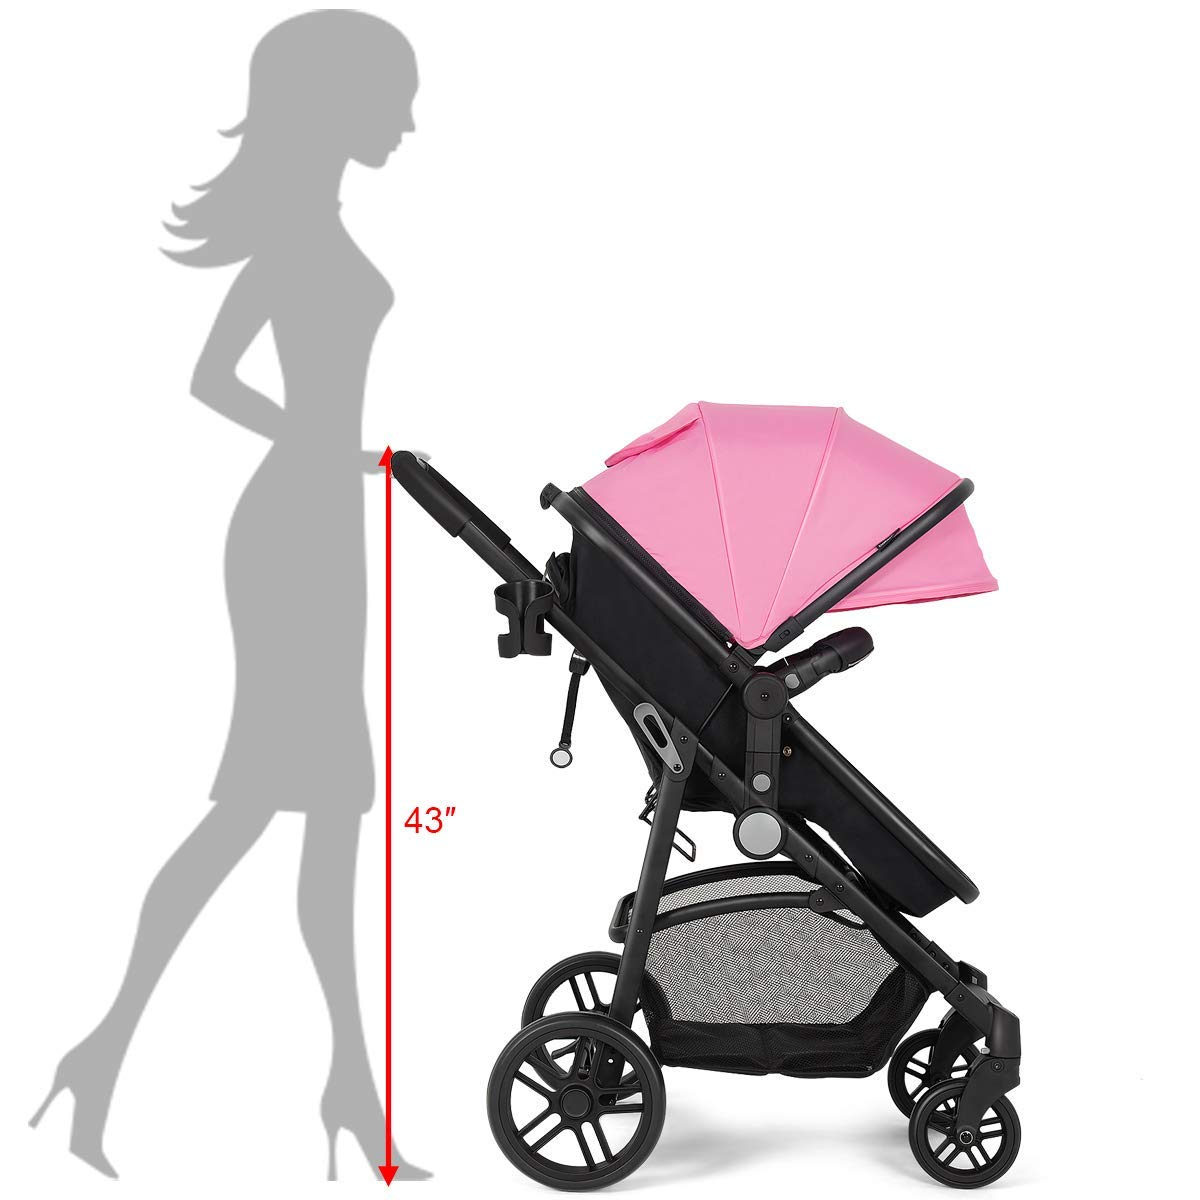 Costzon Baby Stroller, 2 in 1 Convertible Carriage Bassinet to Stroller, Pushchair with Foot Cover, Cup Holder, Large Storage Space, Wheels Suspension, 5-Point Harness (Pink Color) by Costzon (Image #7)